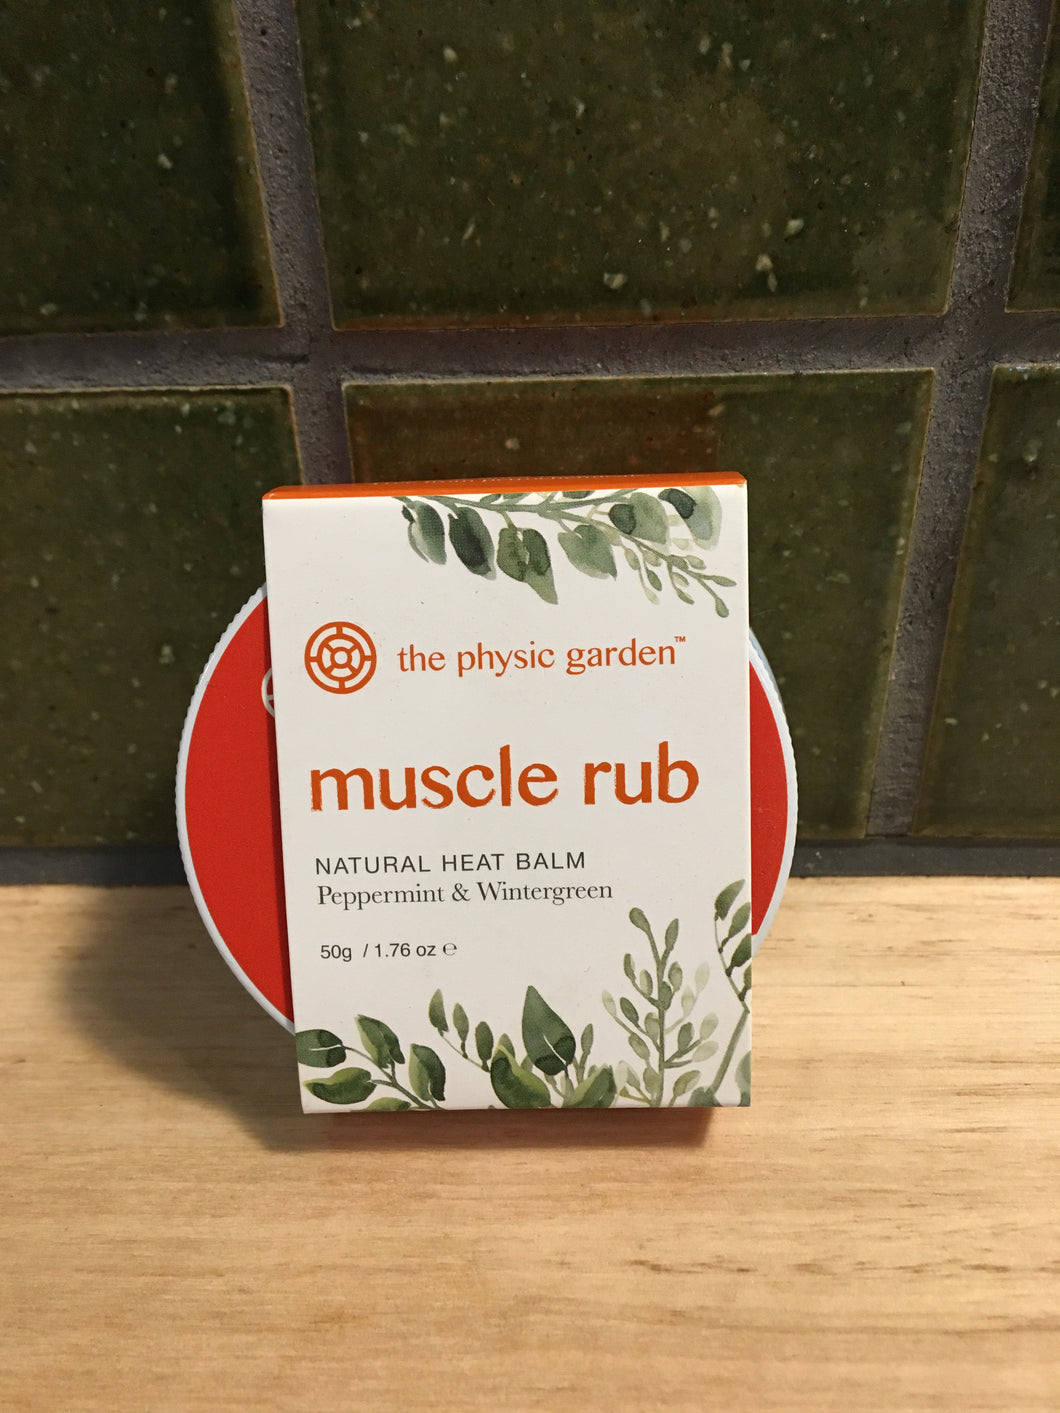 The Physic Garden Muscle Rub Peppermint & Wintergreen 50g